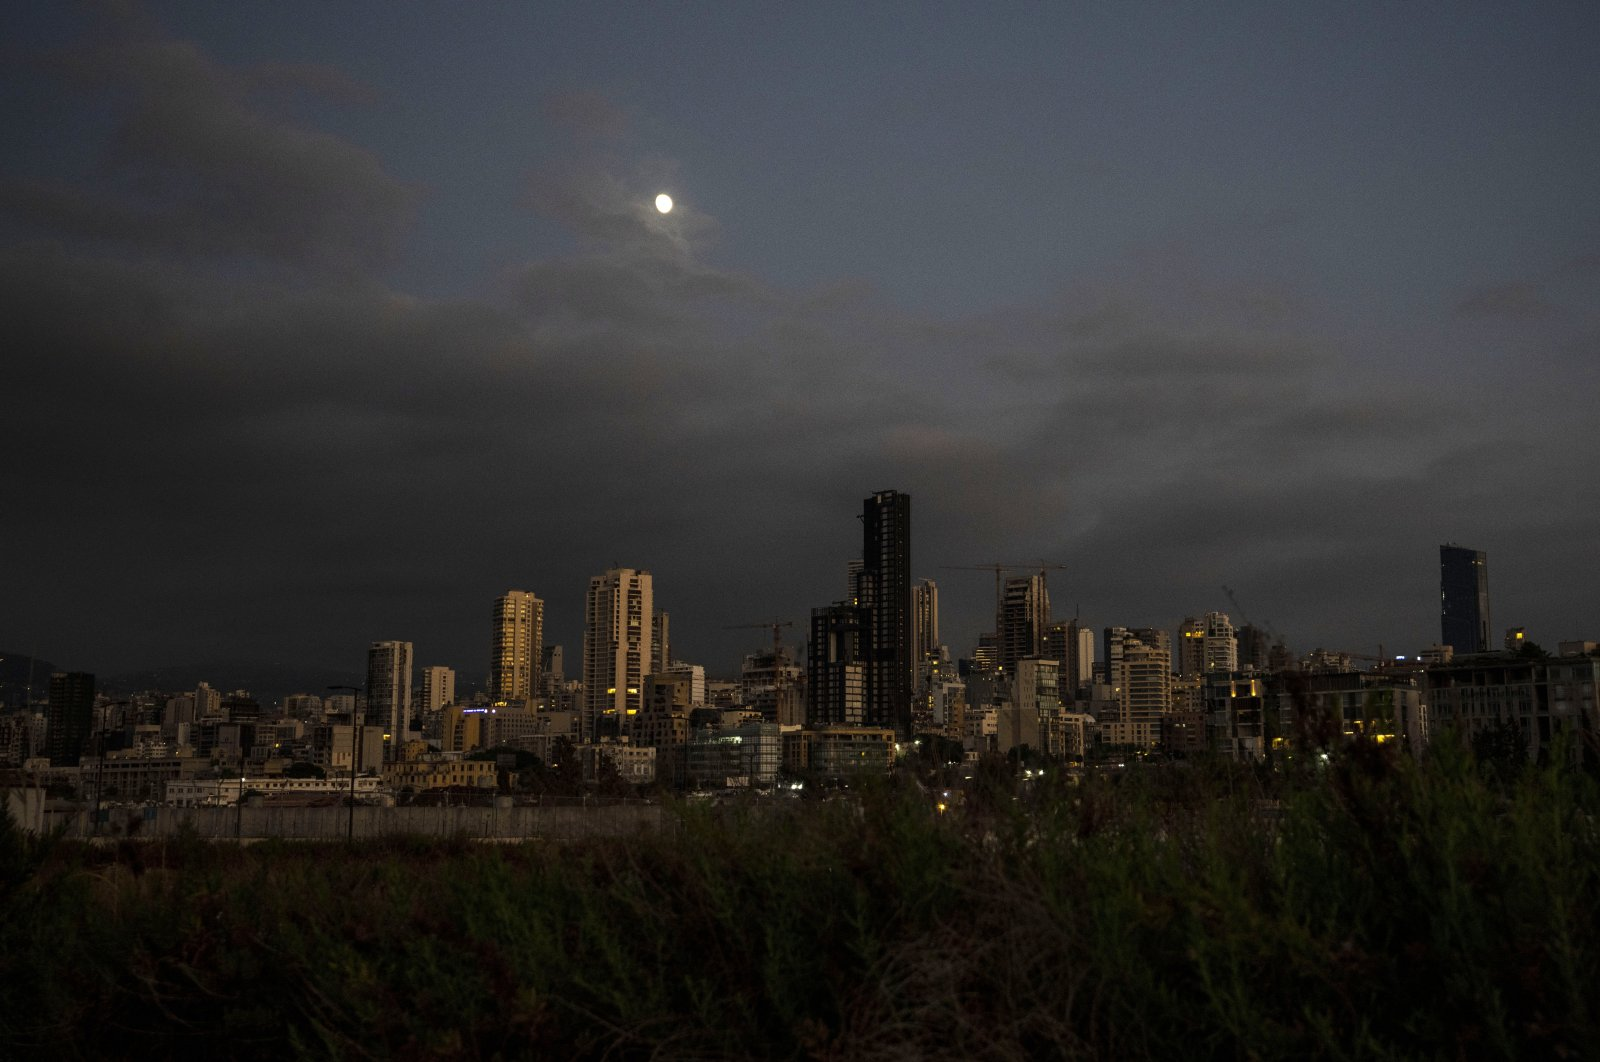 The moon rises over the capital city of Beirut as it remains in darkness during a power outage, Lebanon, Aug. 19, 2021. (AP Photo)